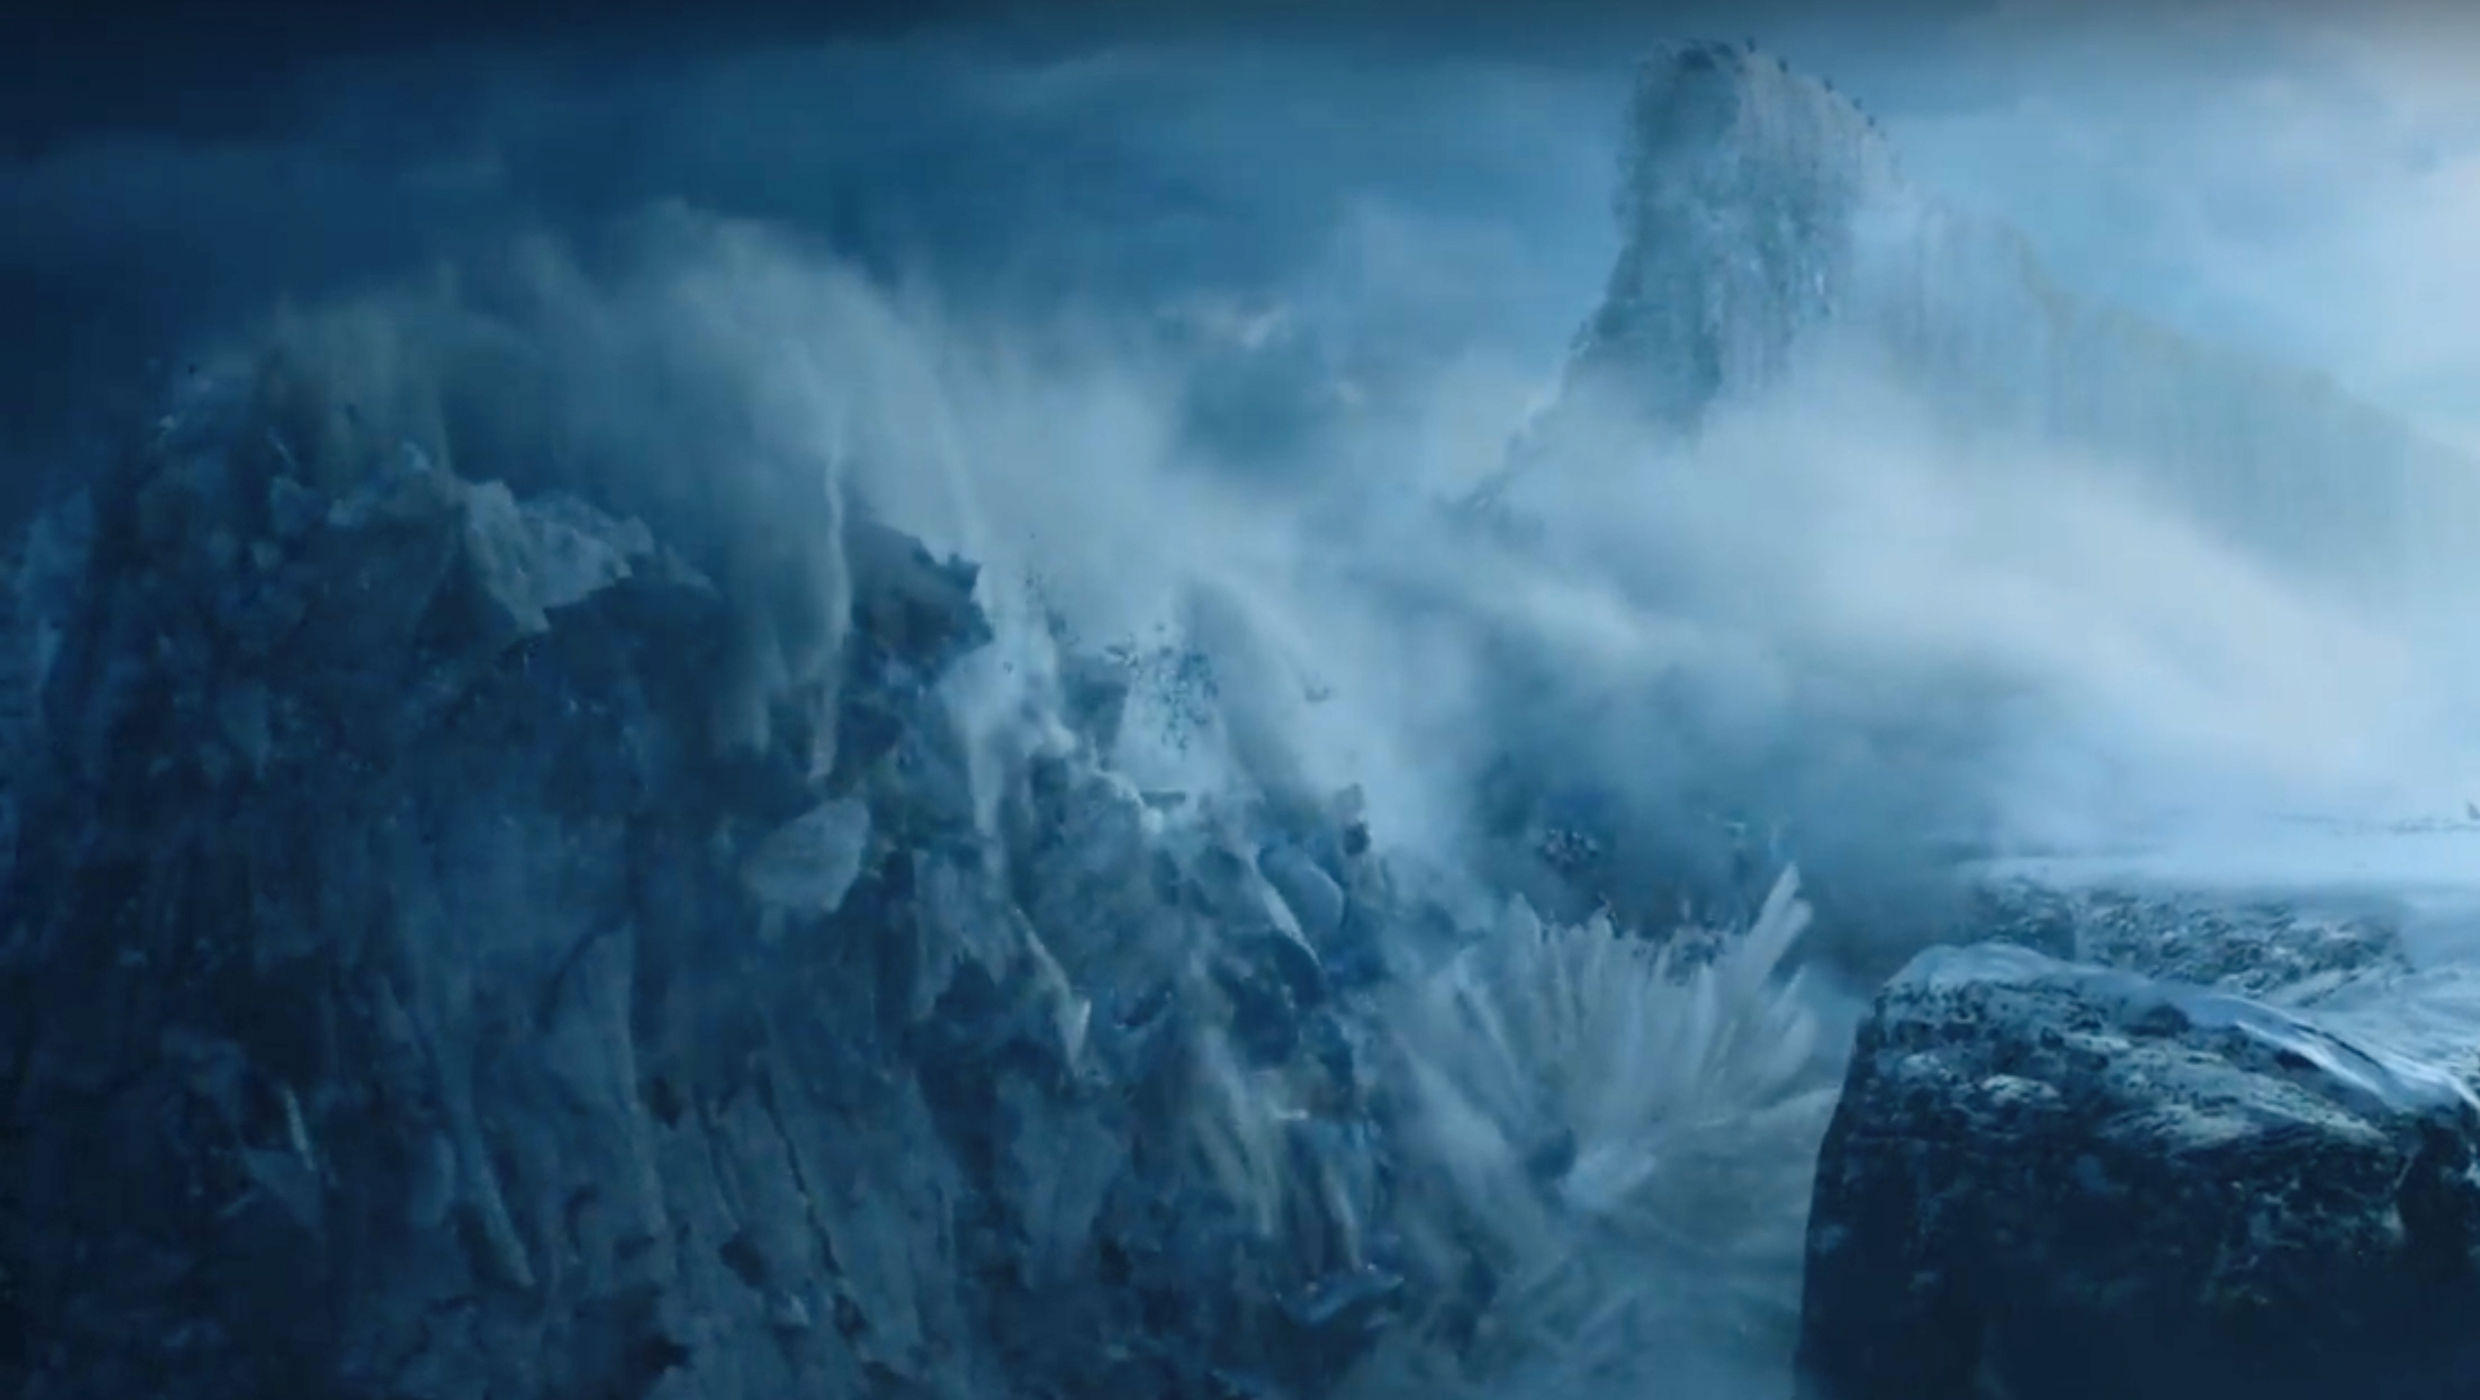 Does the Wall from Game of Thrones defy science?